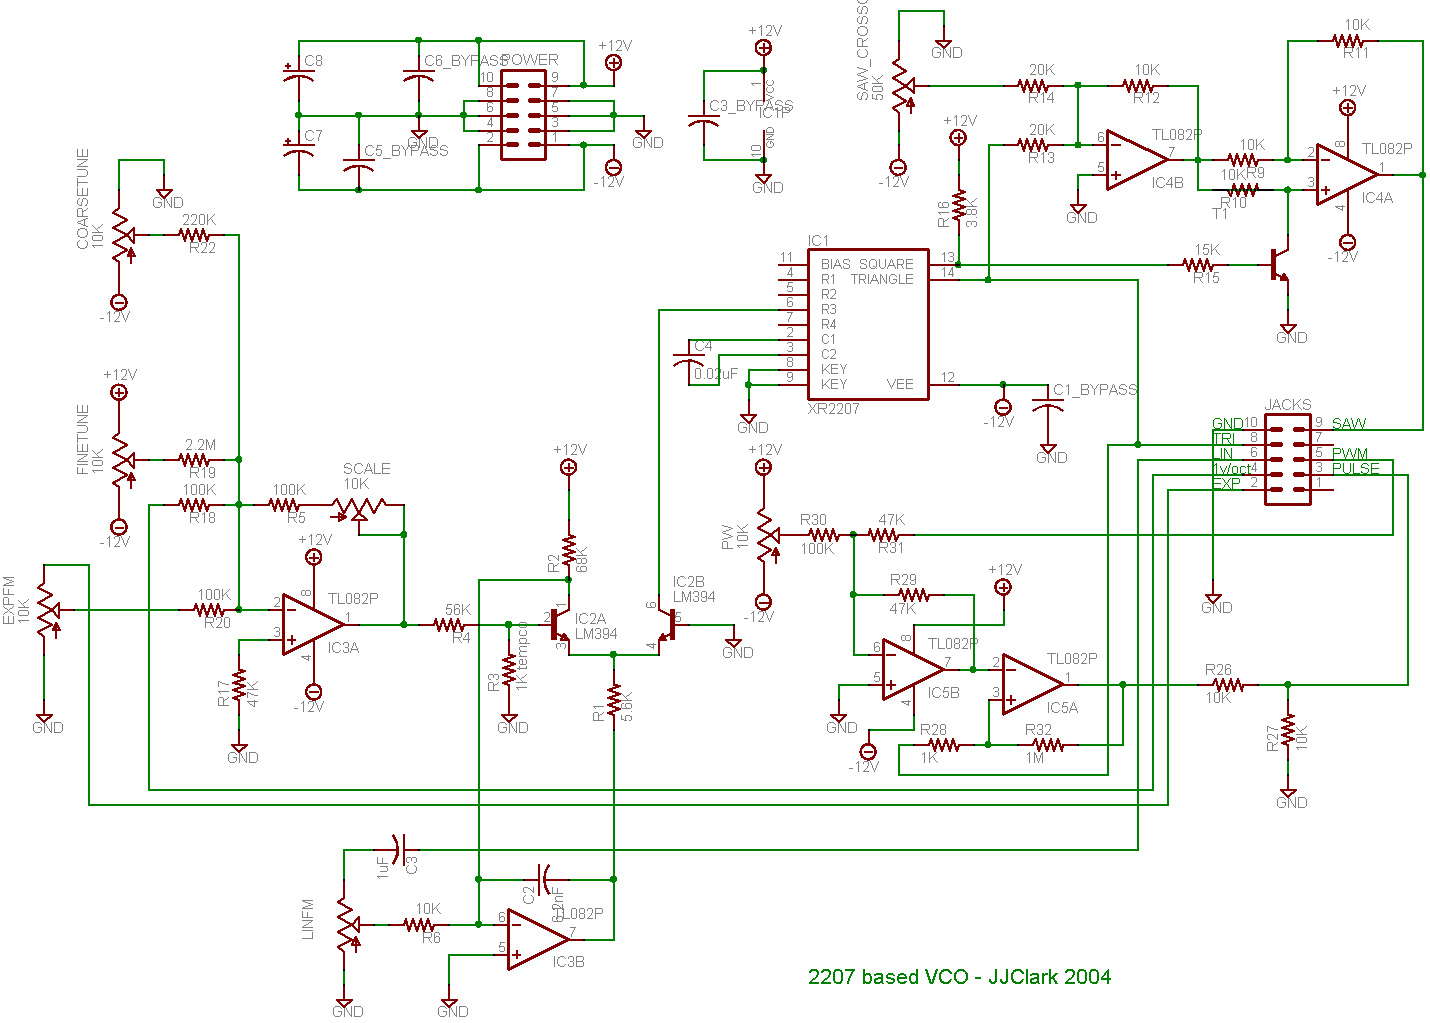 Vco Schematic Pwm - Trusted Wiring Diagram •